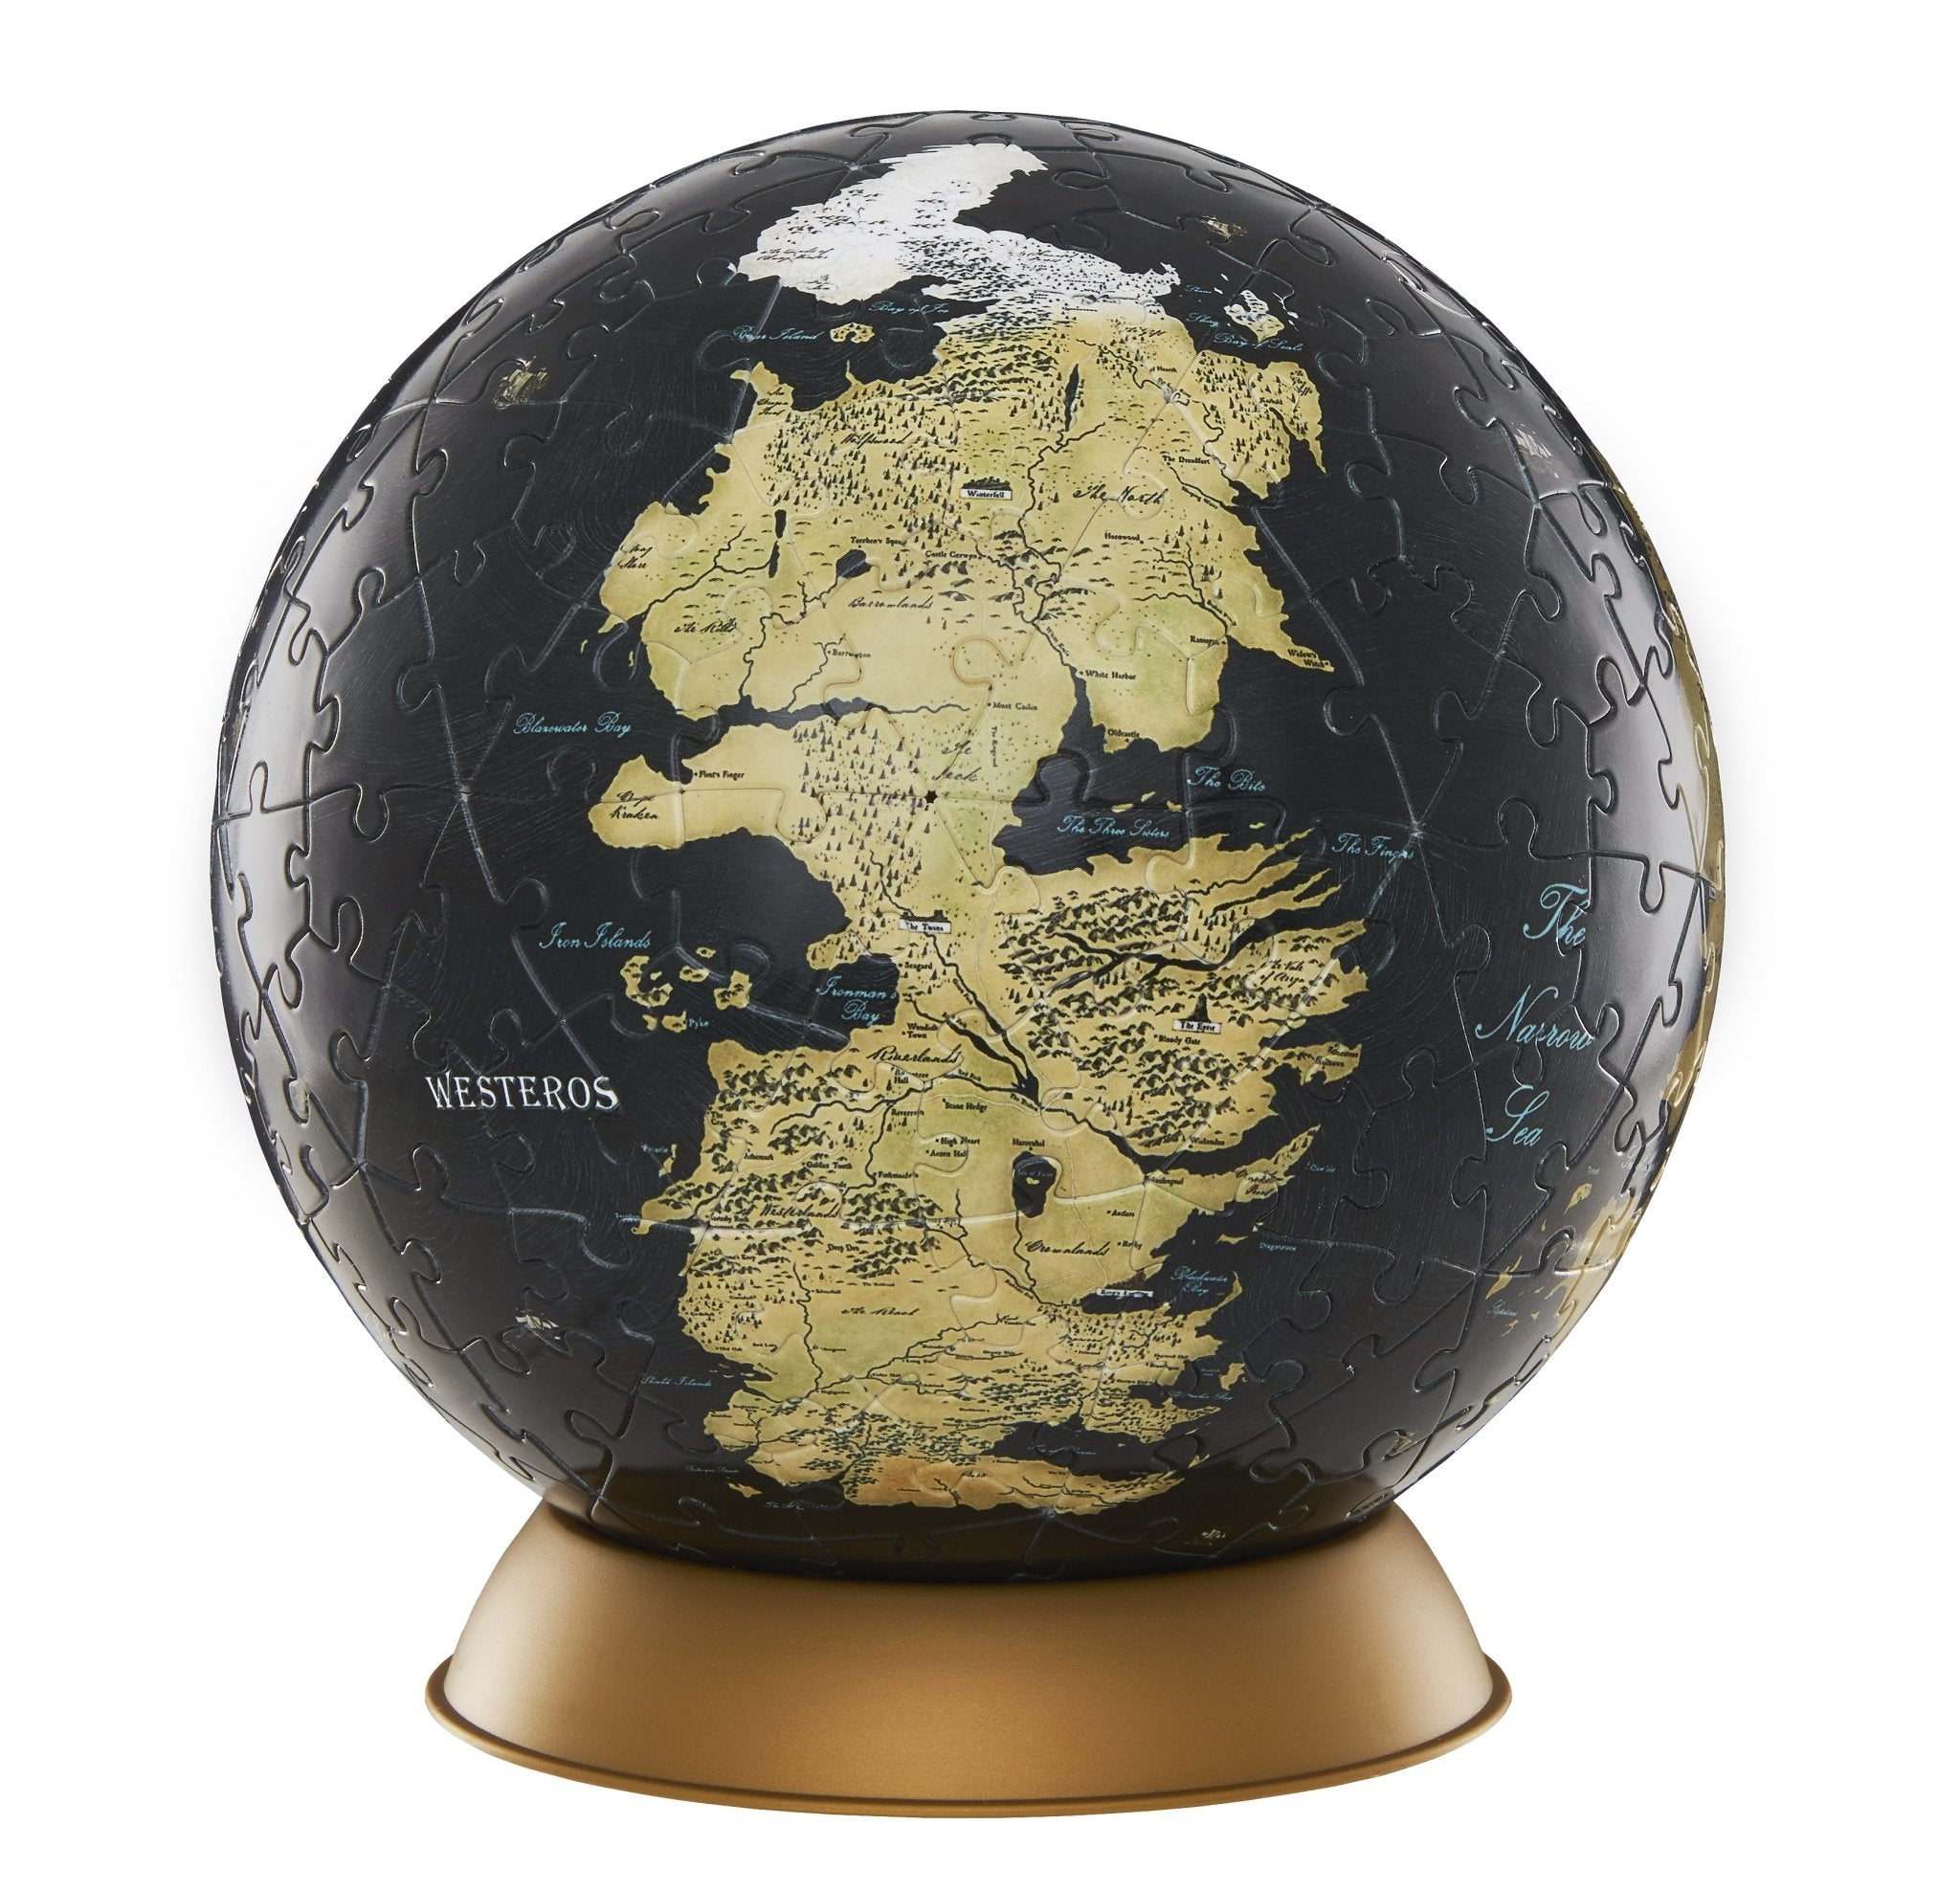 "3D Game of Thrones World Globe Puzzle 6"" - 4DPuzz - 4DPuzz"